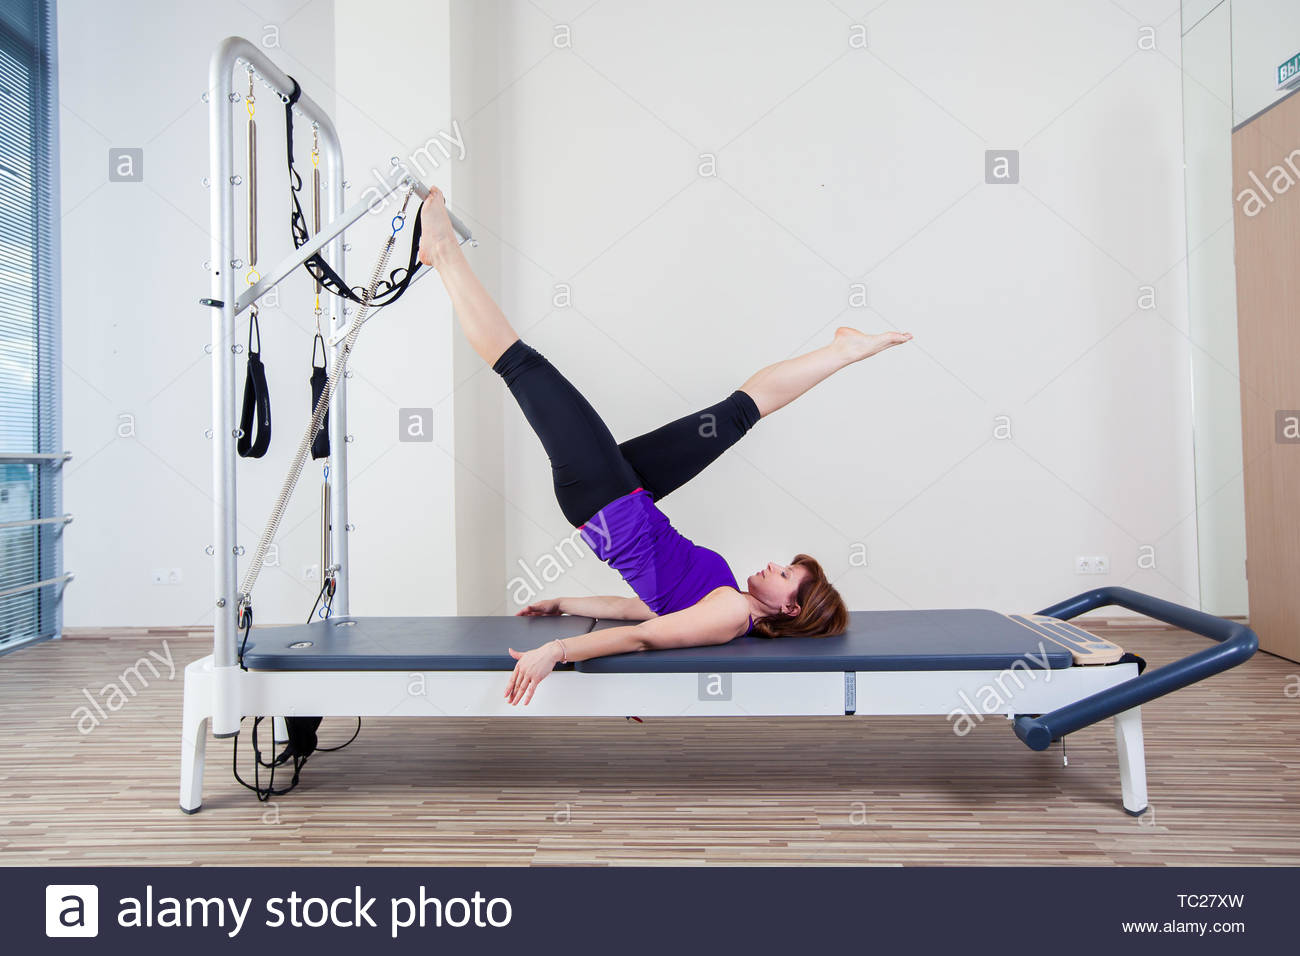 gym woman pilate instructor stretching in reformer bed. - Stock Image